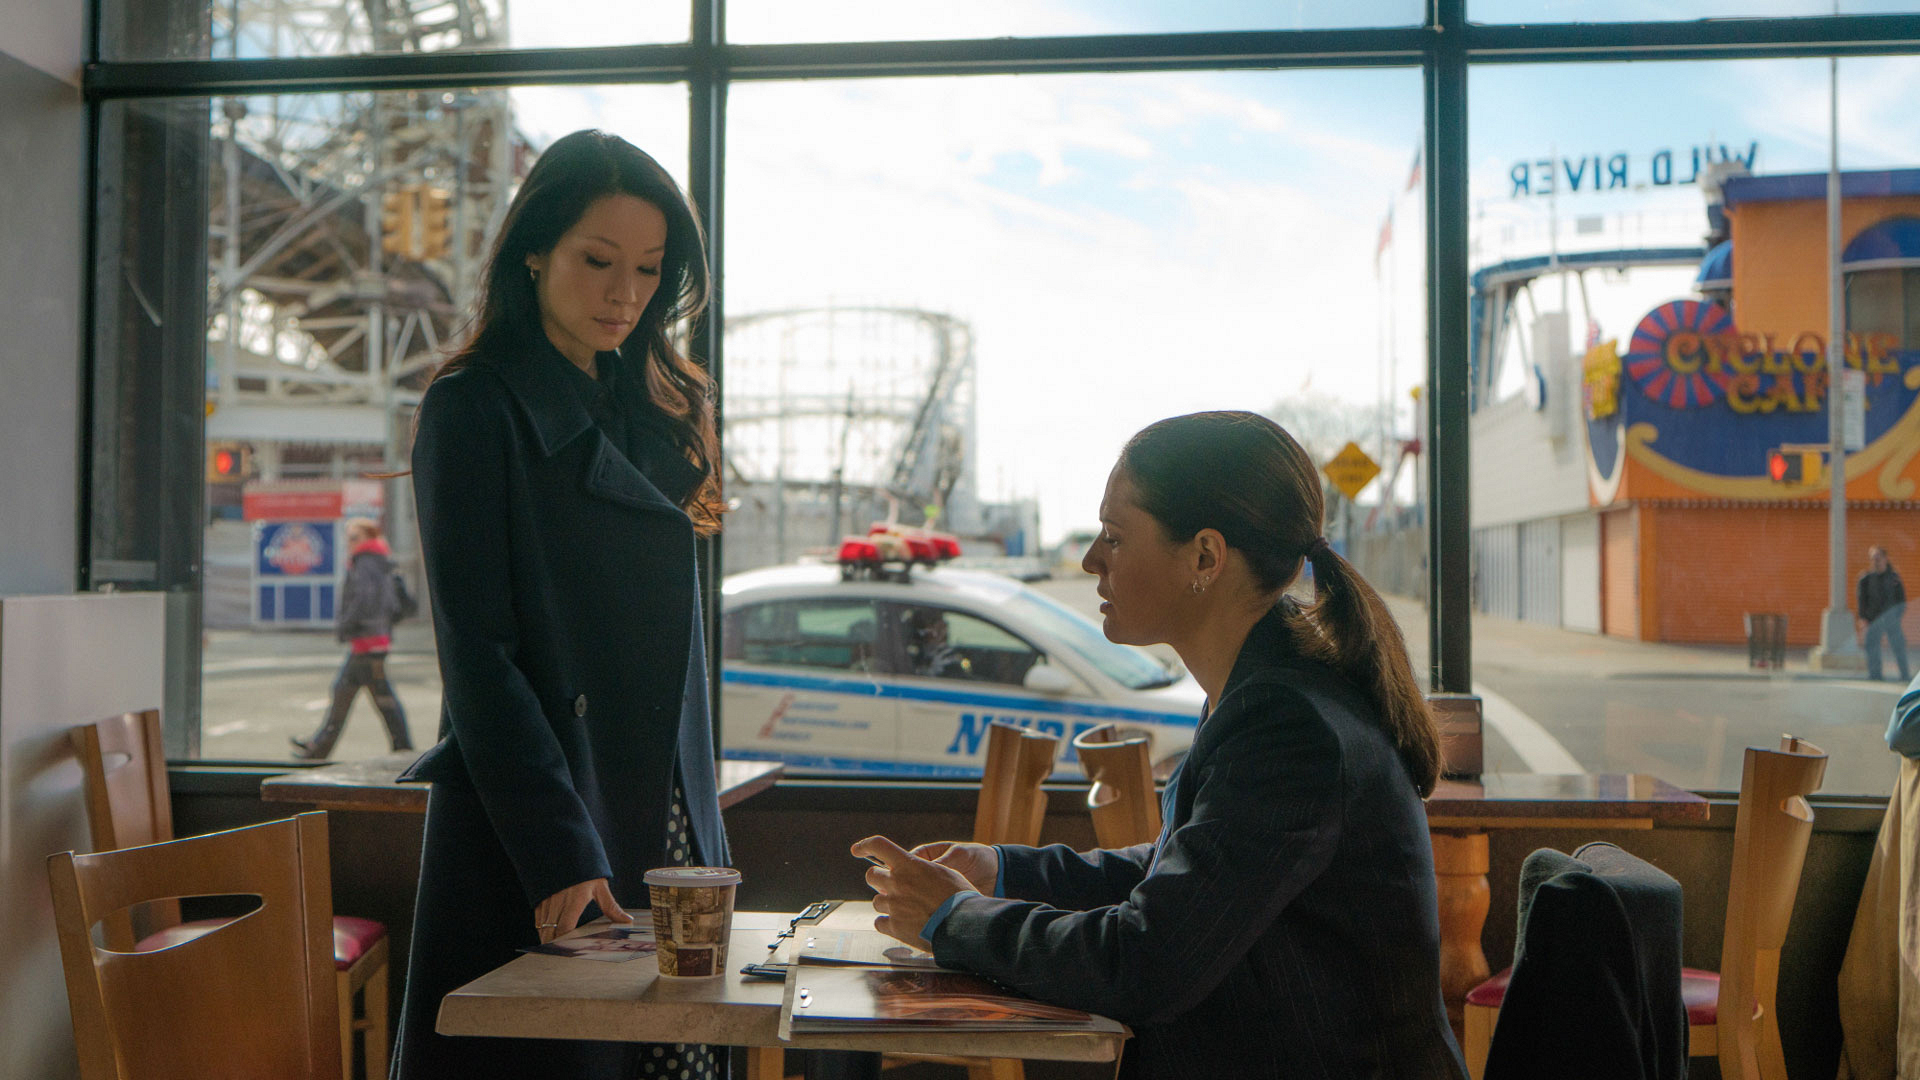 Lucy Liu as Dr. Joan Watson and Monique Gabriela Curnen as Detective Gina Cortez